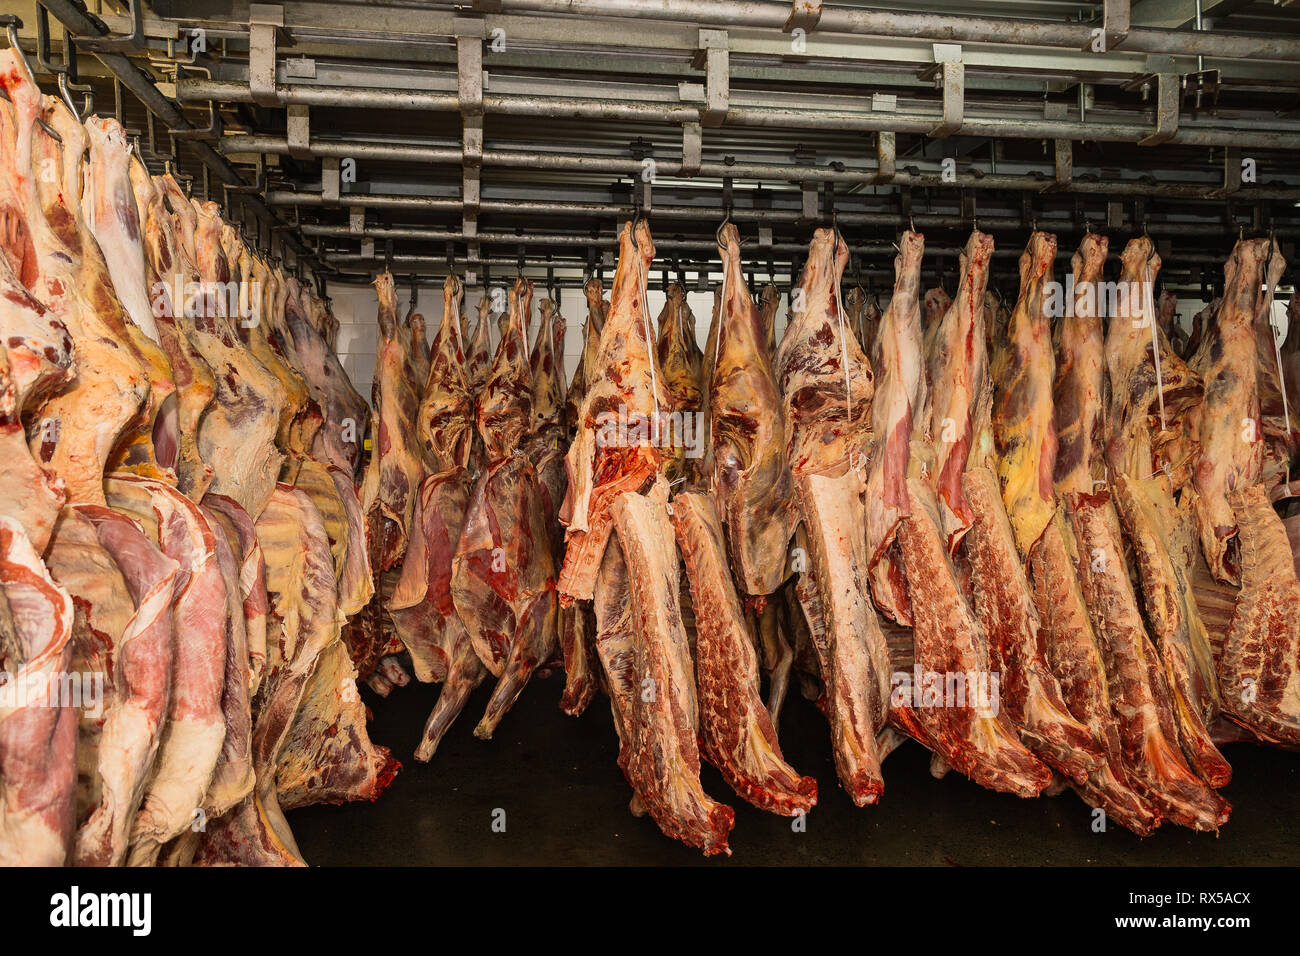 Halal Slaughter Stock Photos & Halal Slaughter Stock Images